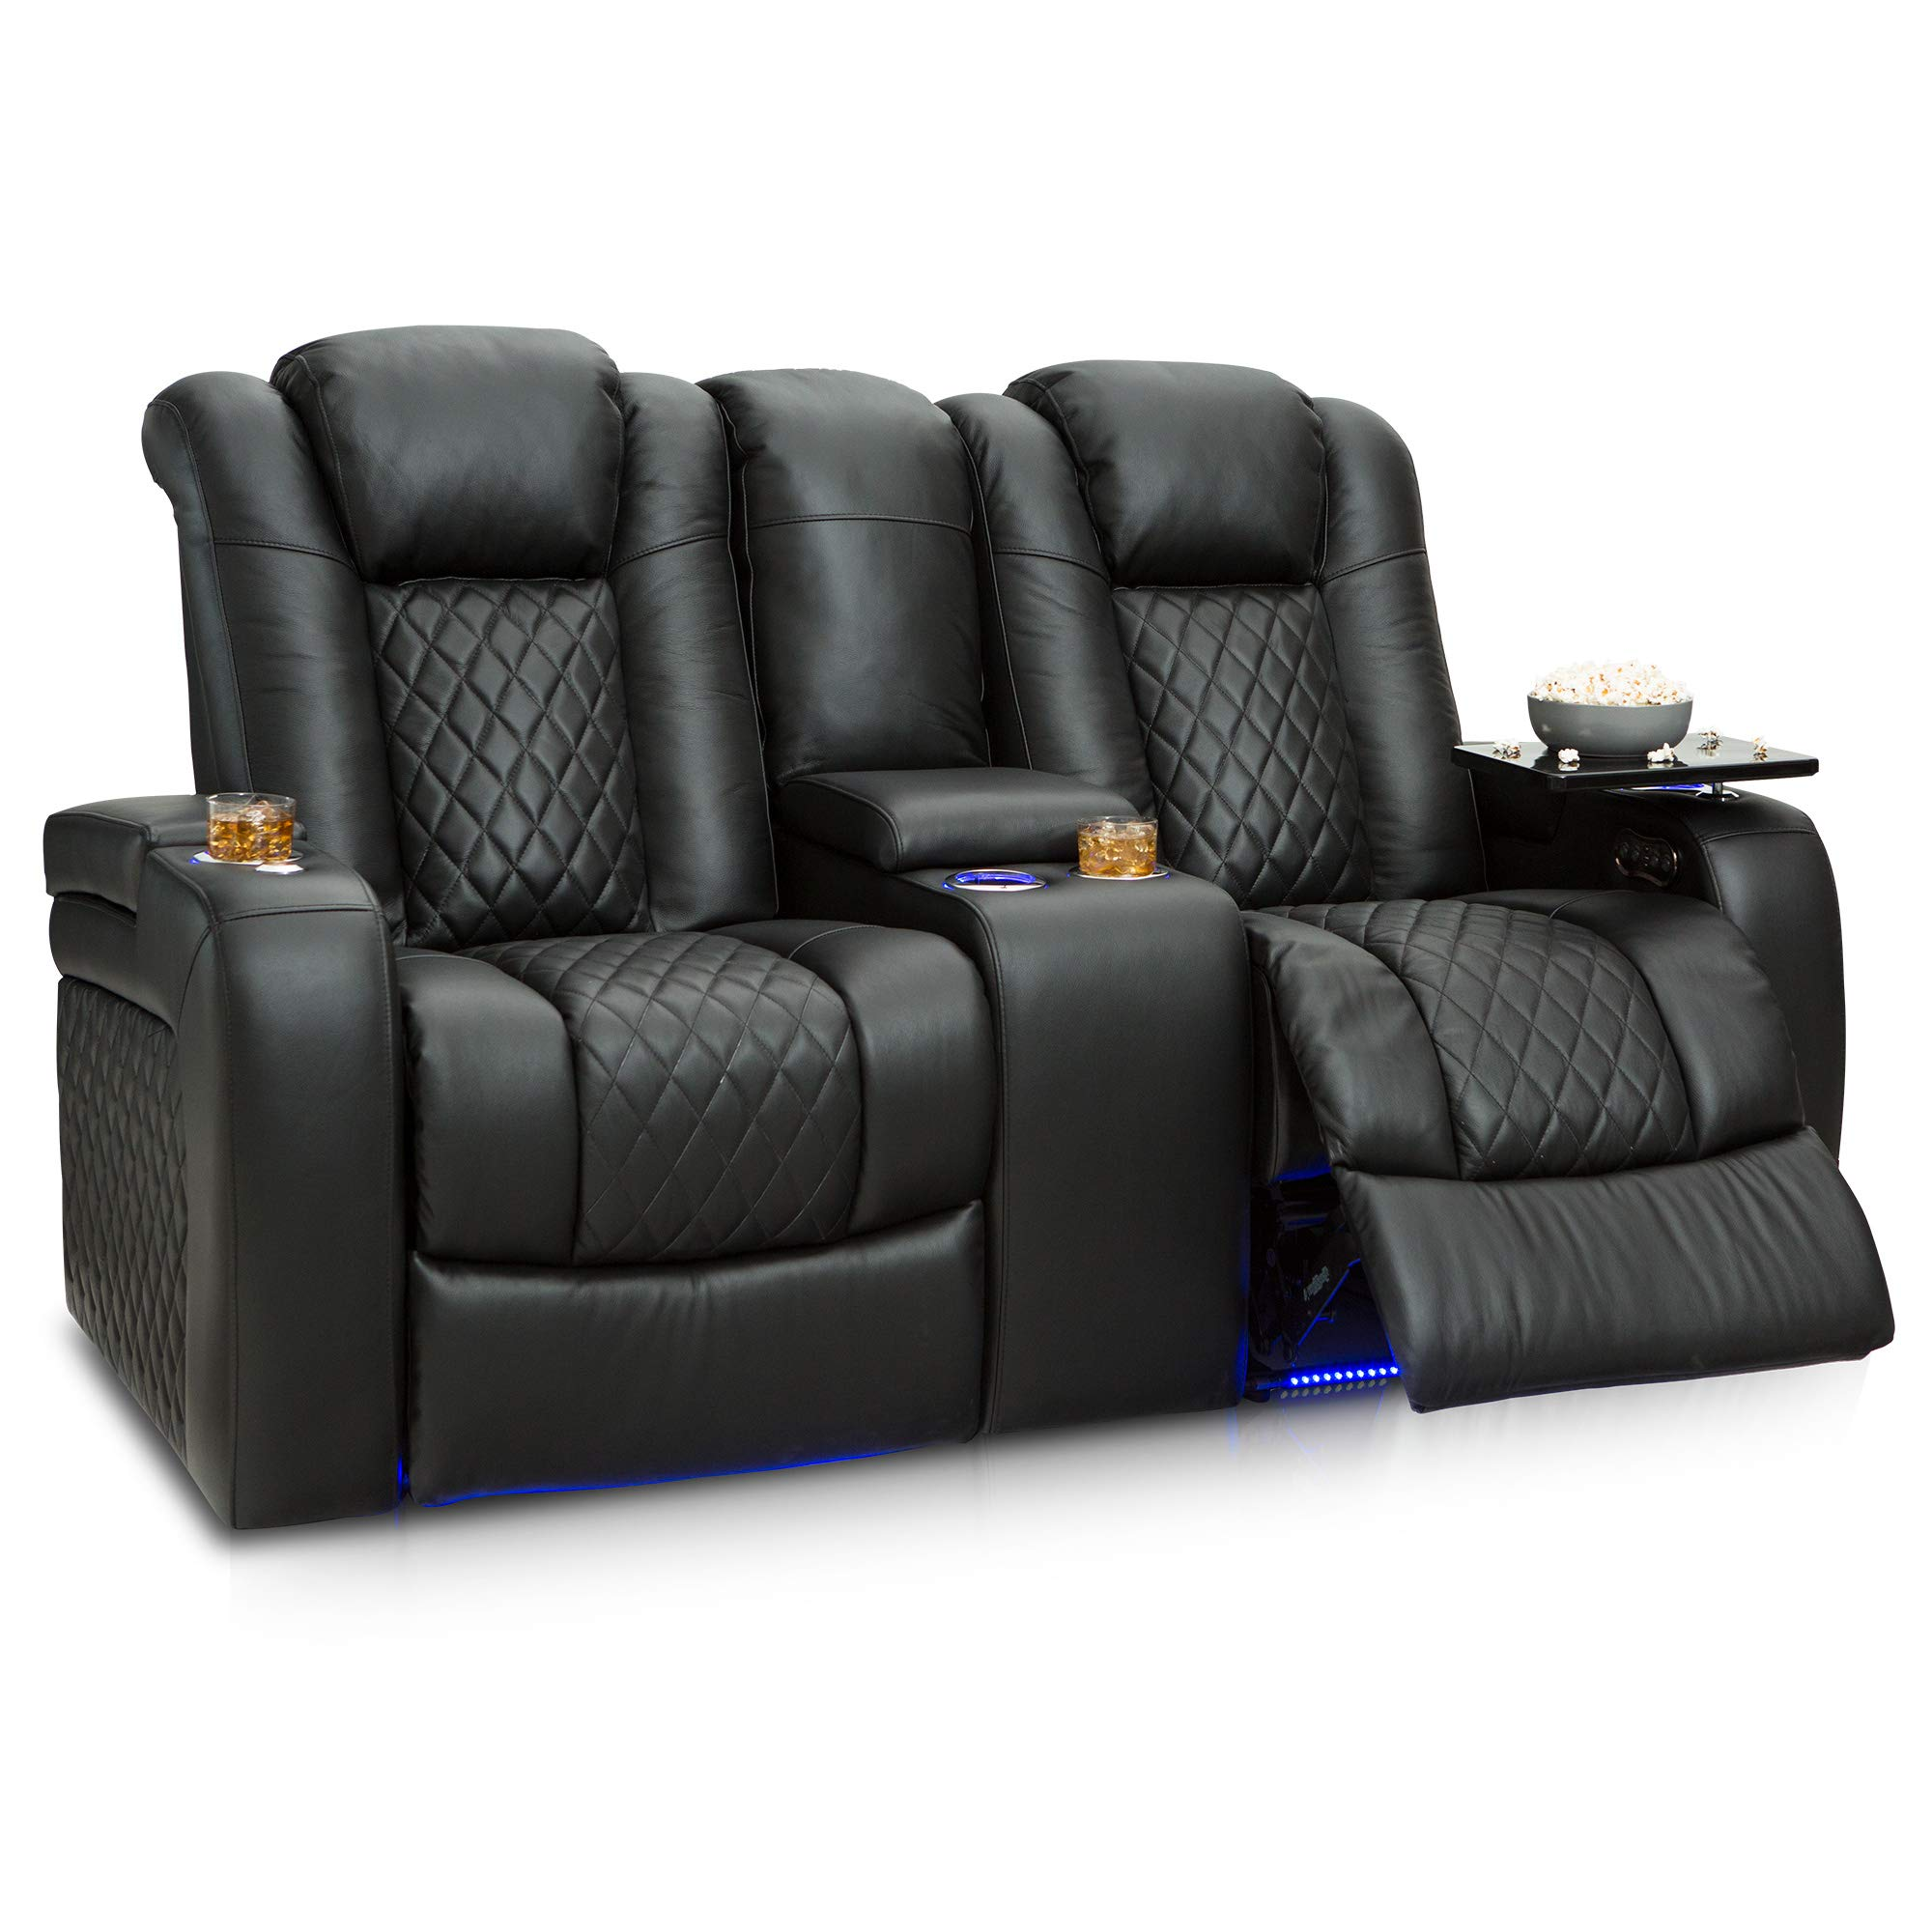 Seatcraft Anthem Home Theater Seating Leather Power Recline Loveseat with Center Storage Console, Powered Headrests, Storage, and Cupholders (Black) by Seatcraft